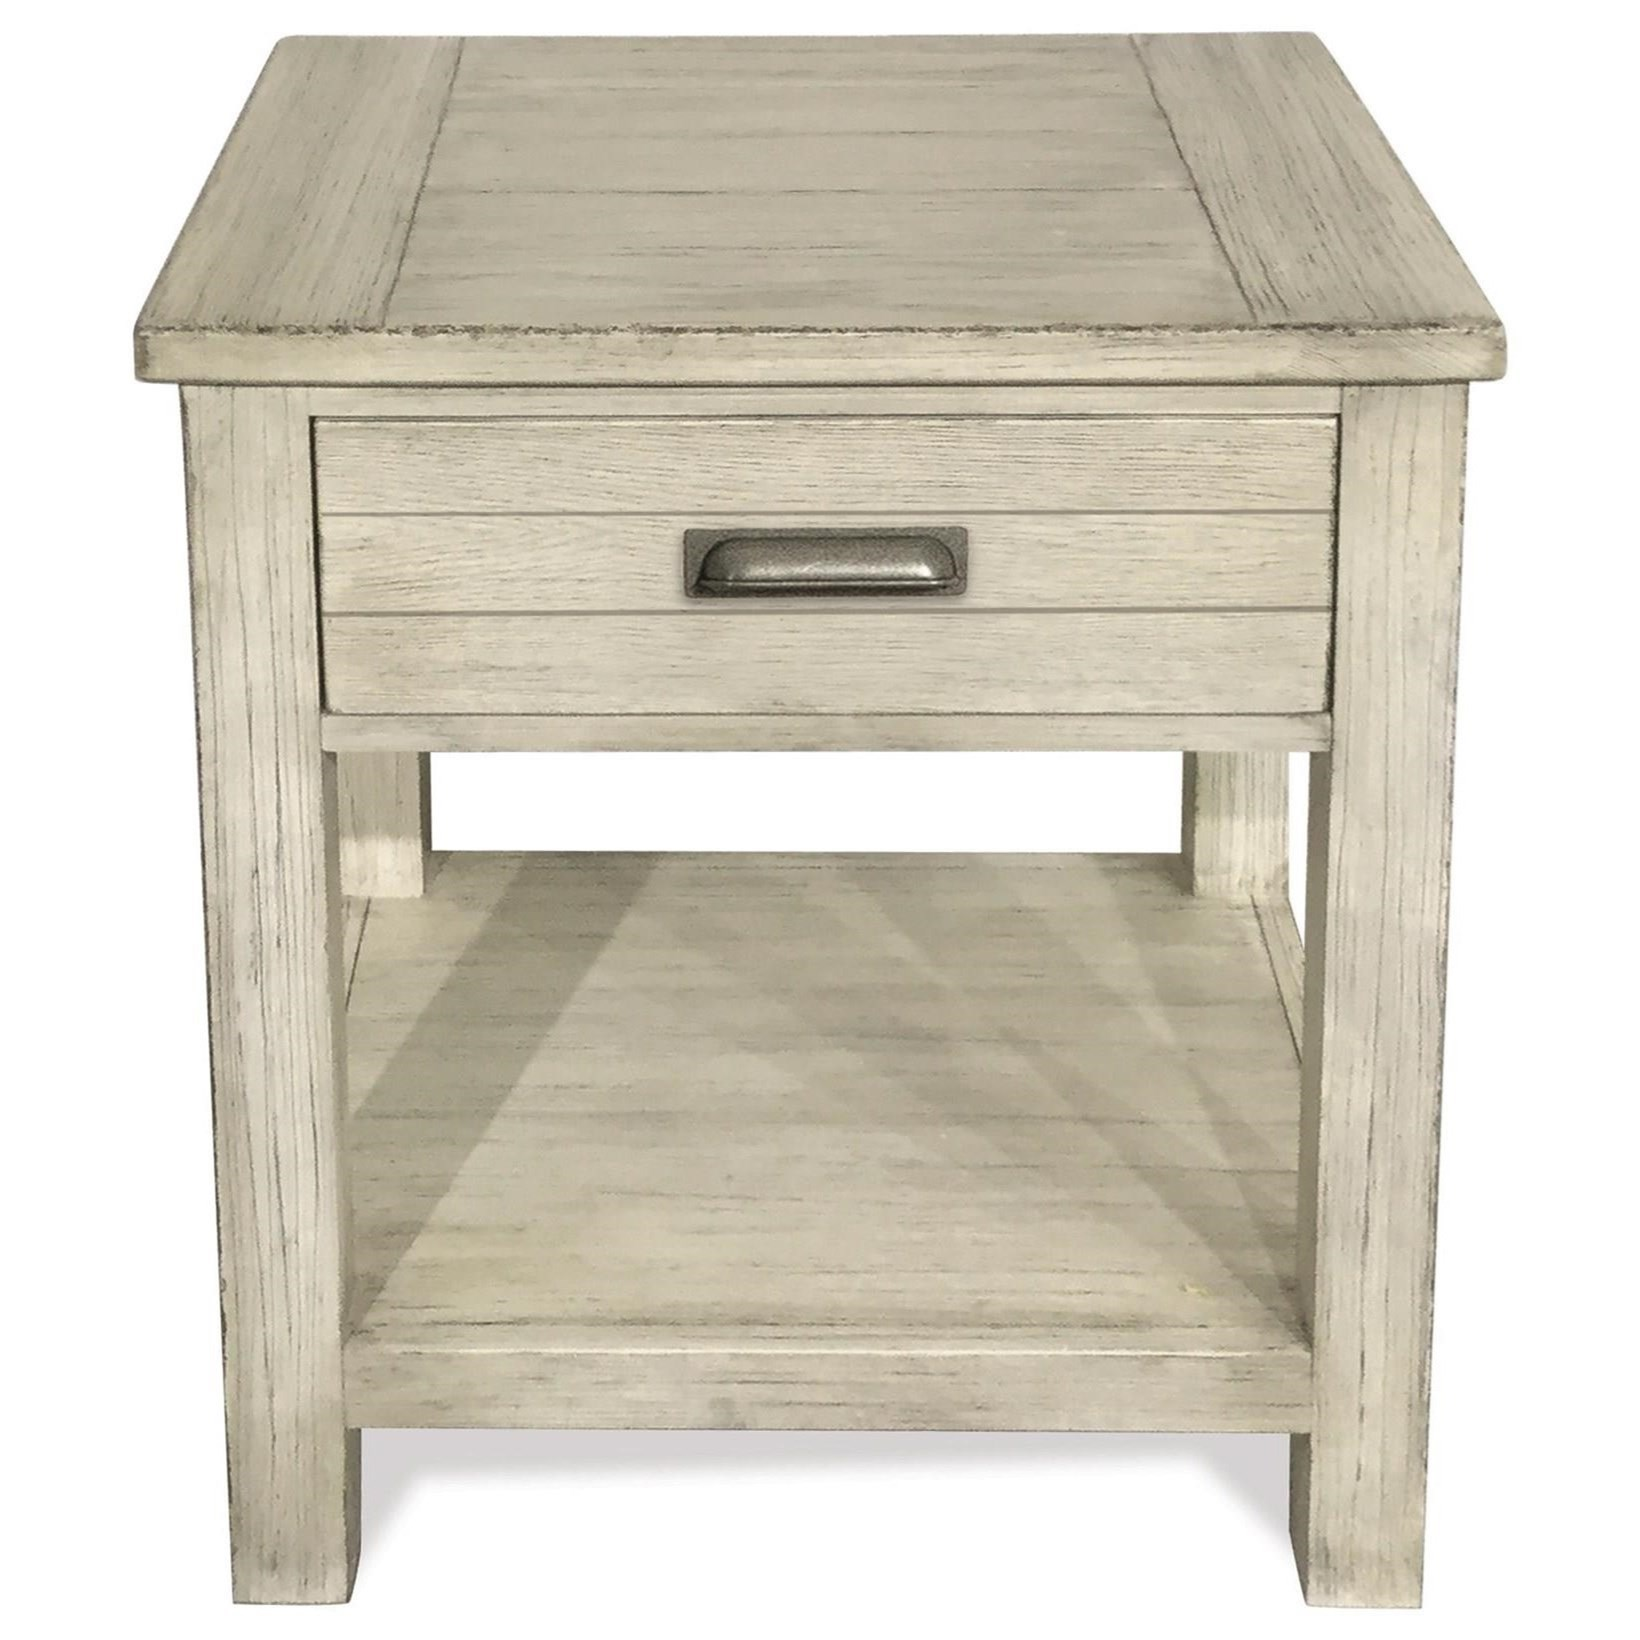 Riverside Furniture Aberdeen 1-Drawer Nightstand - Item Number: 24268